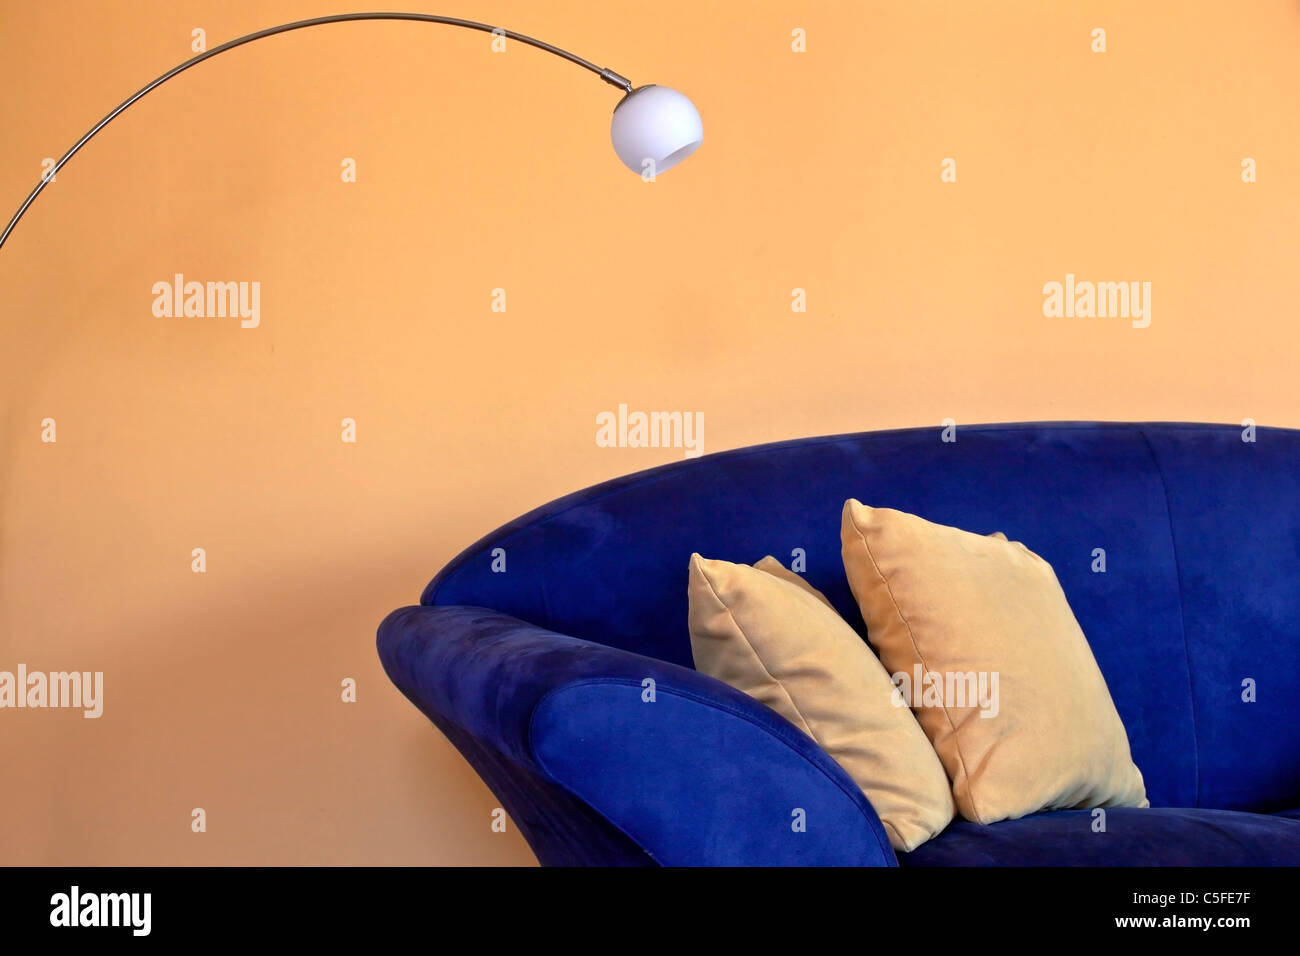 a blue sofa with reading lamp and yellow pillows and walls - Stock Image